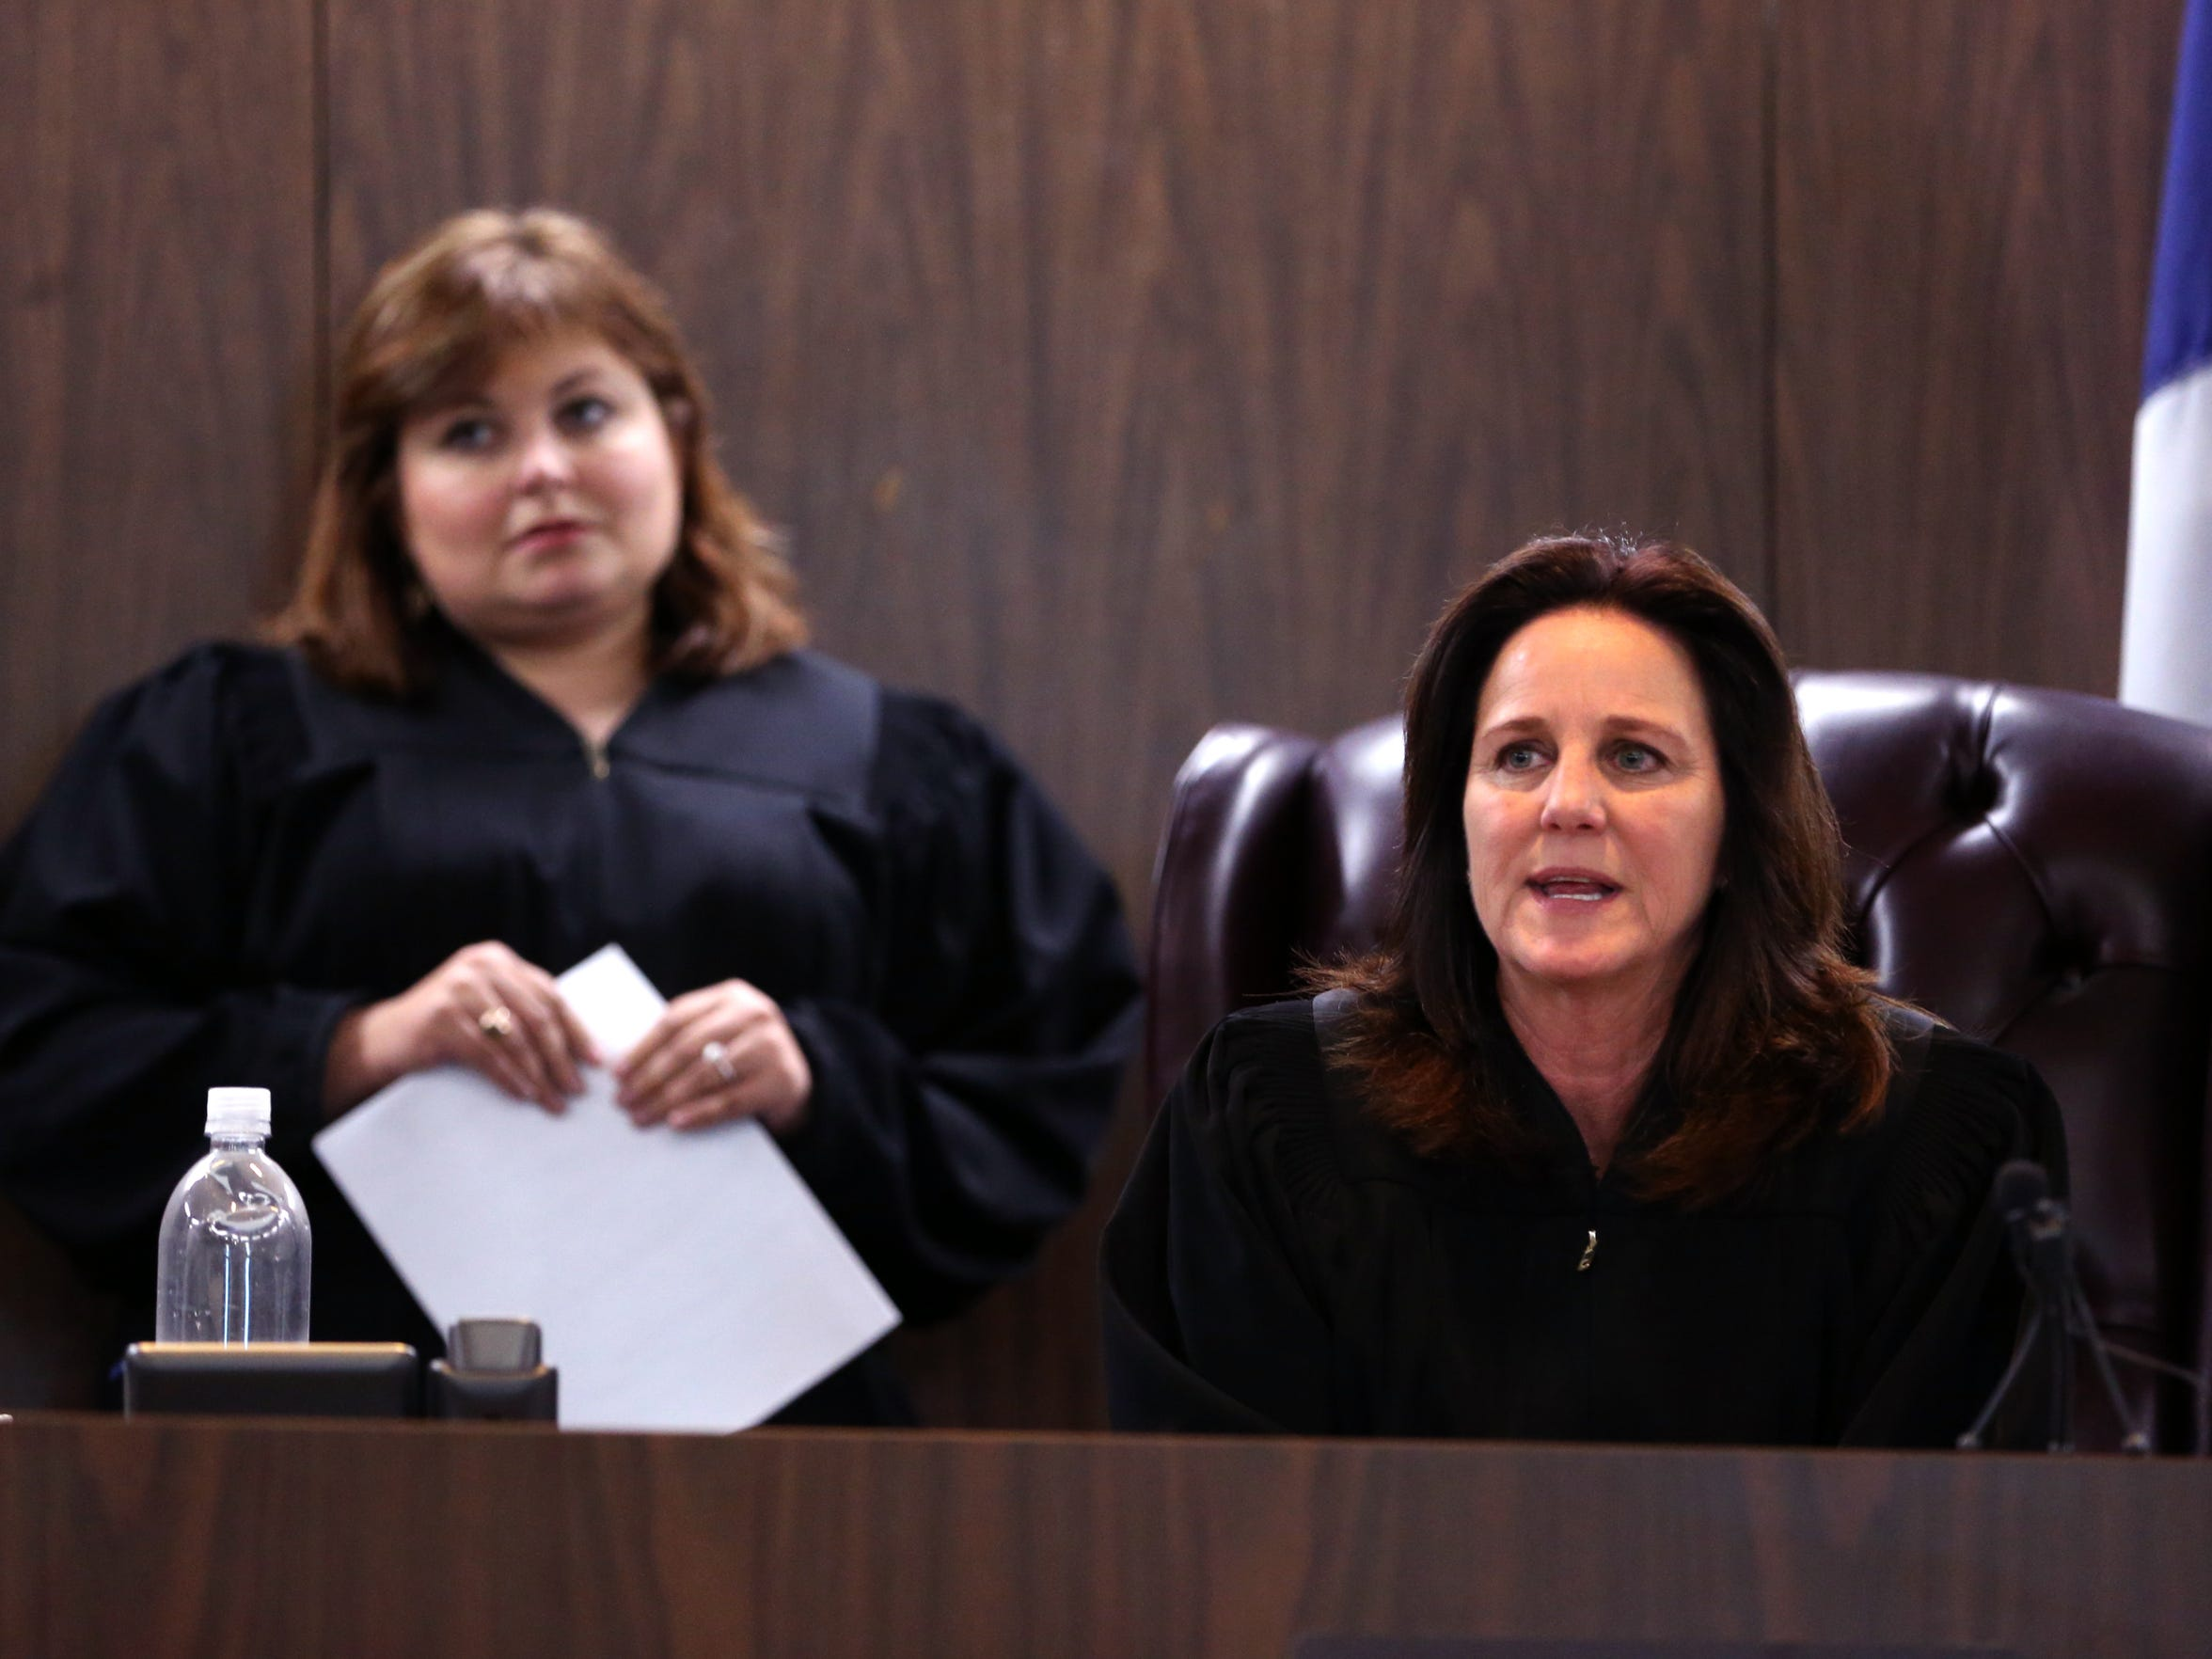 214th District Court Judge Inna Klein (left) prepares to take over the domestic violence court from 347th District Court Judge Missy Medary on Friday, April 14, 2017. During Klein's first probation review as judge of the domestic violence court, she sent 21 of 83 probationers to jail.